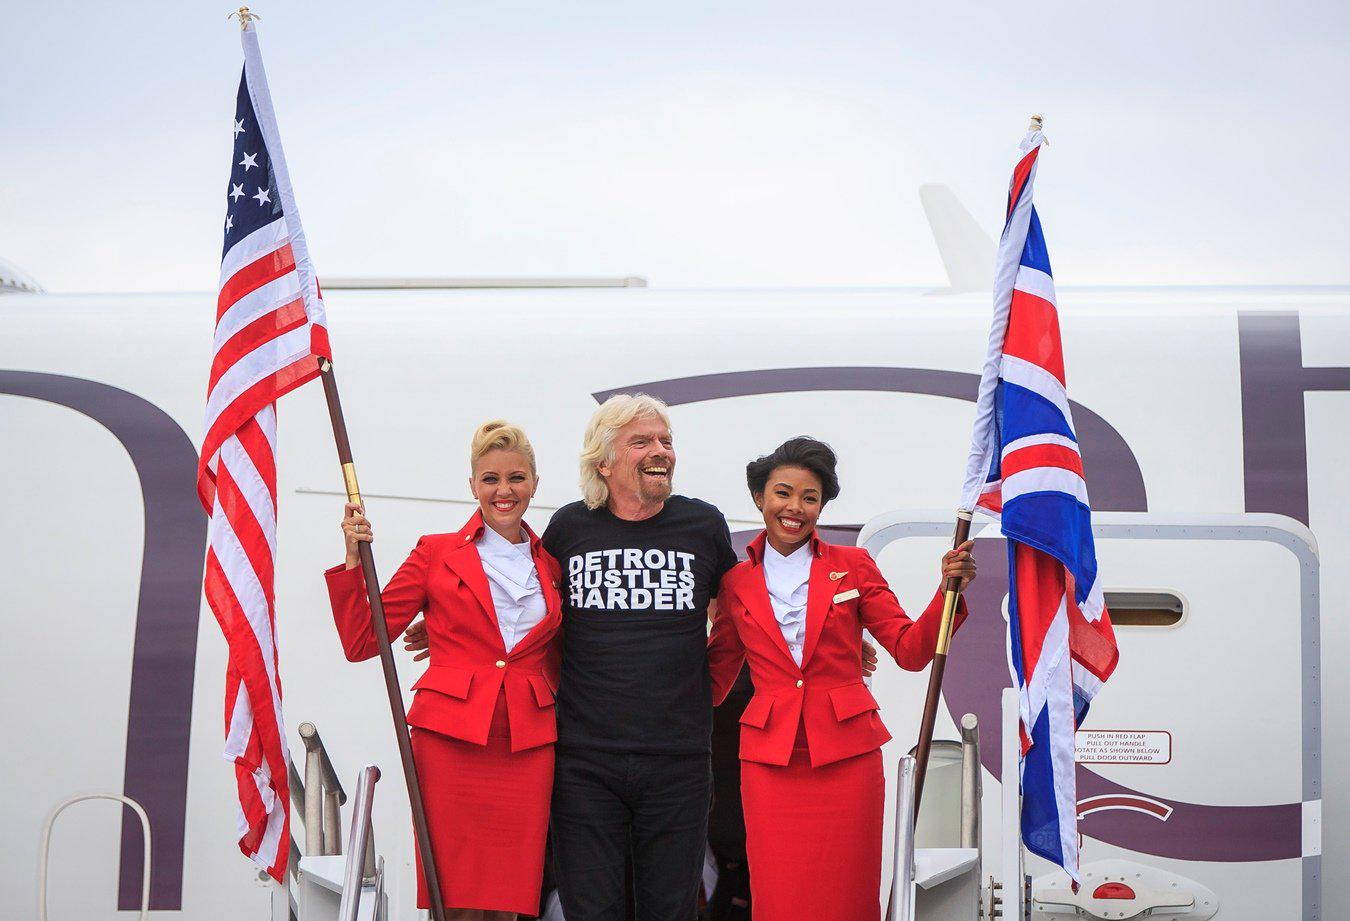 RT @richardbranson: A great example of turning insurmountable challenges into exciting opportunities http://t.co/naZKUFgxKz #Katrina10 http…